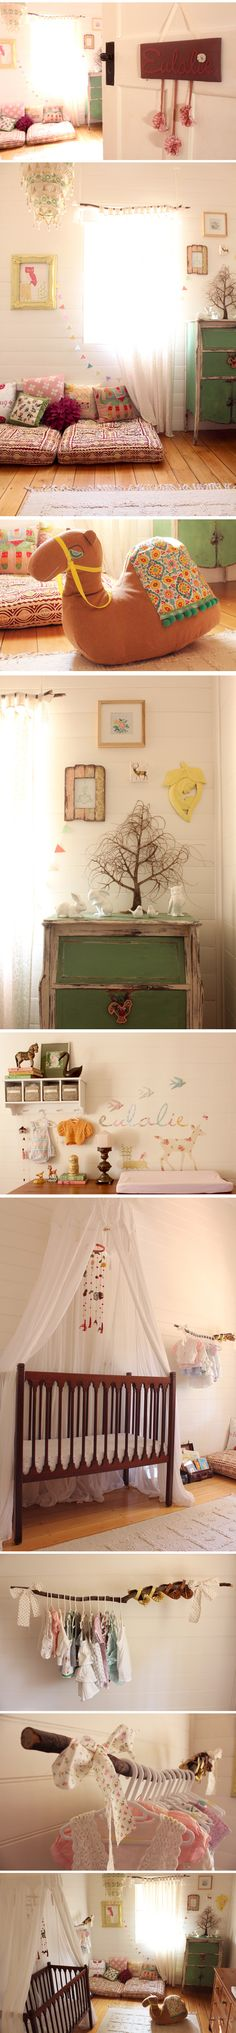 Bohemian nursery design, with found art and organic touches